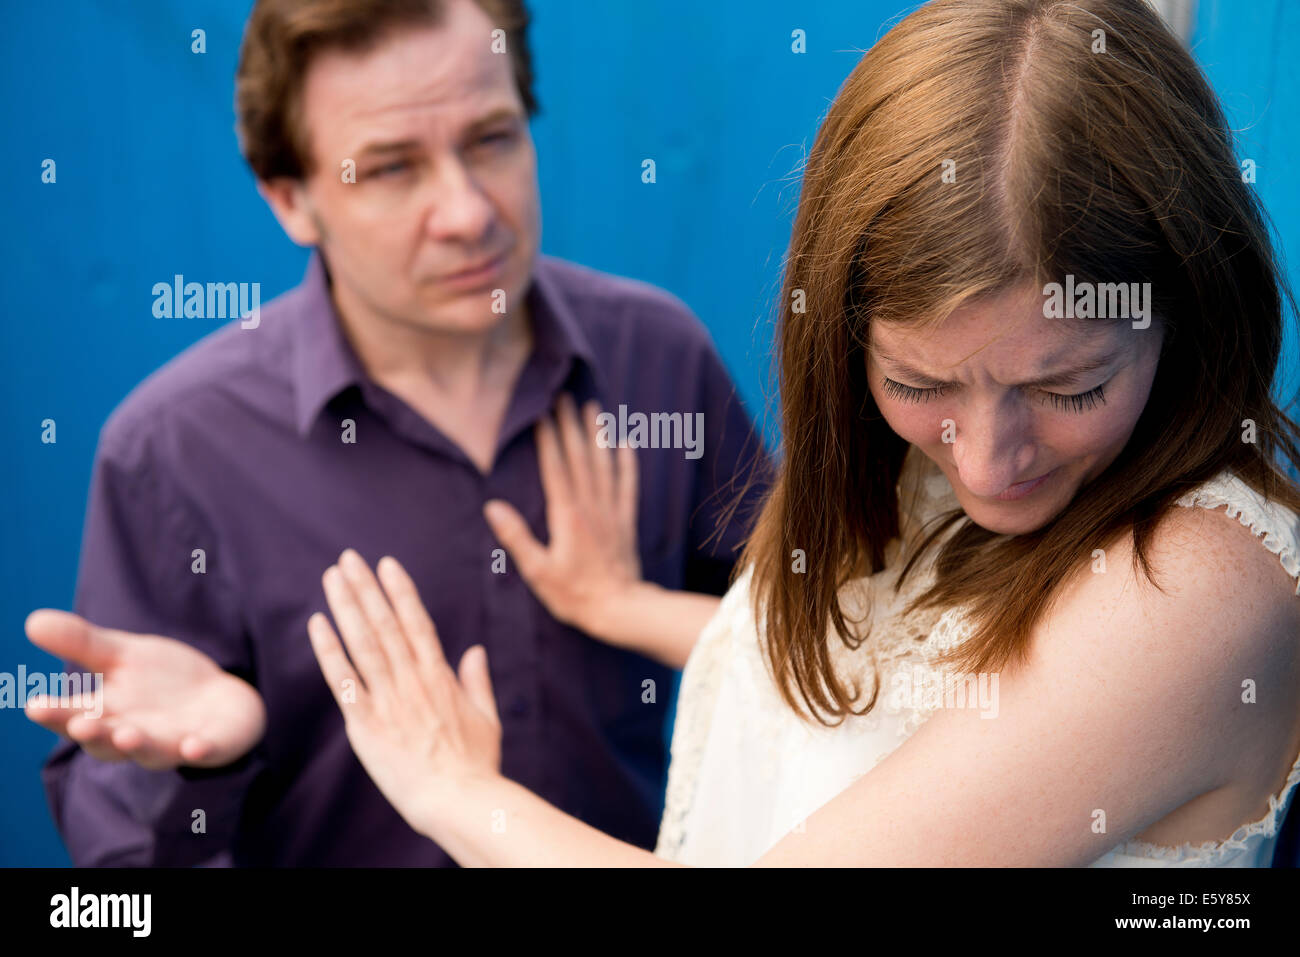 Tearful woman rejecting the advances of a man by keeping him at arms length. - Stock Image